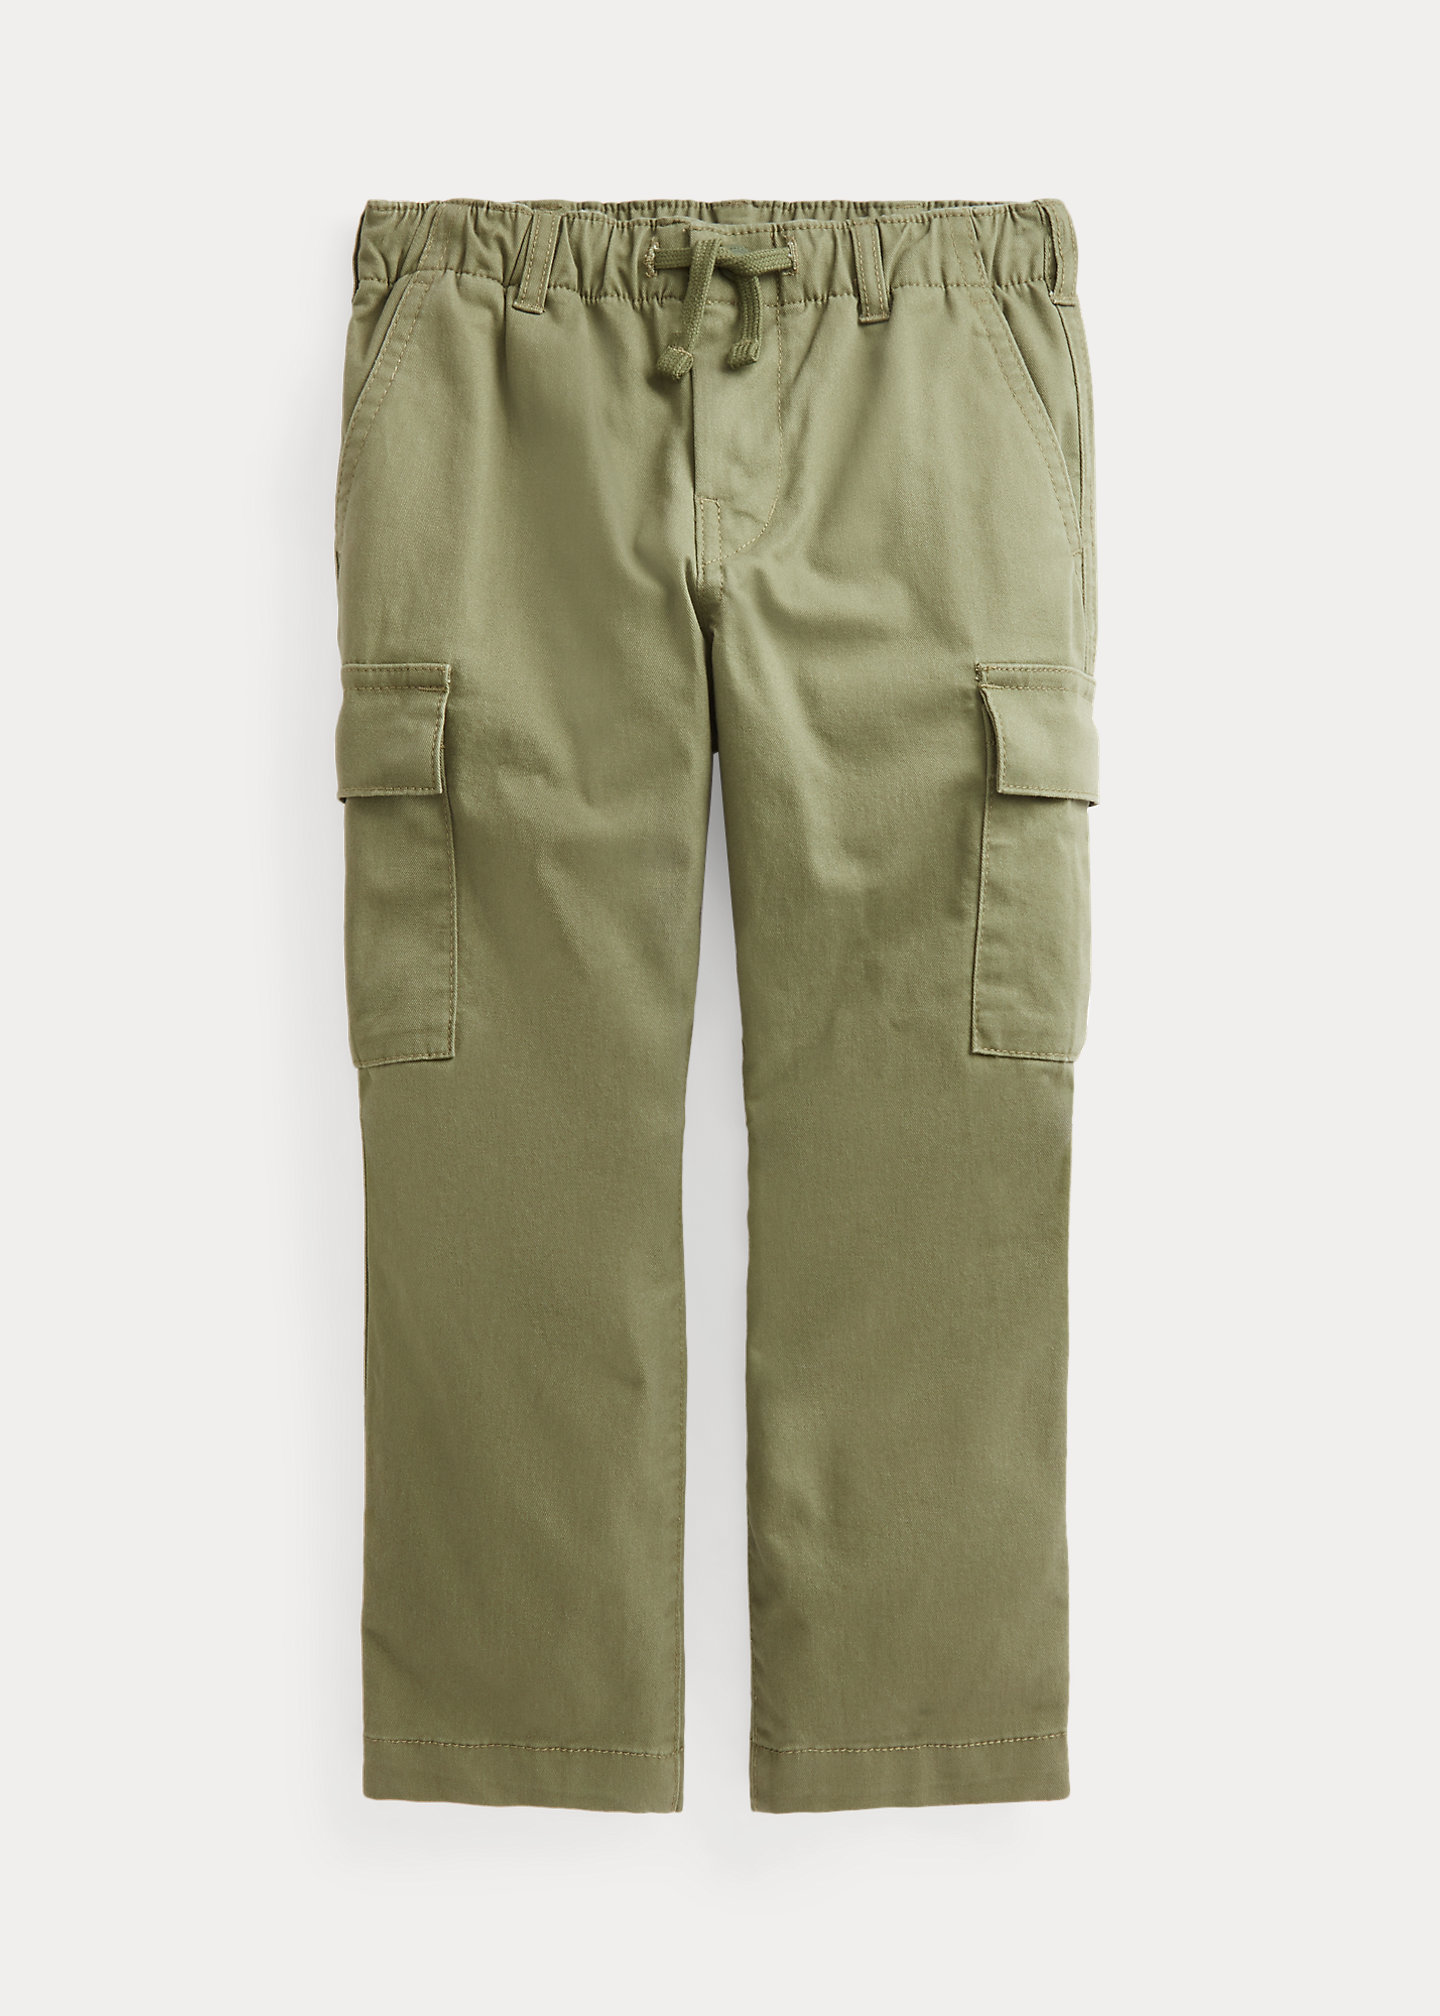 Polo Ralph Lauren Slim Fit Stretch Chino Cargo Pant